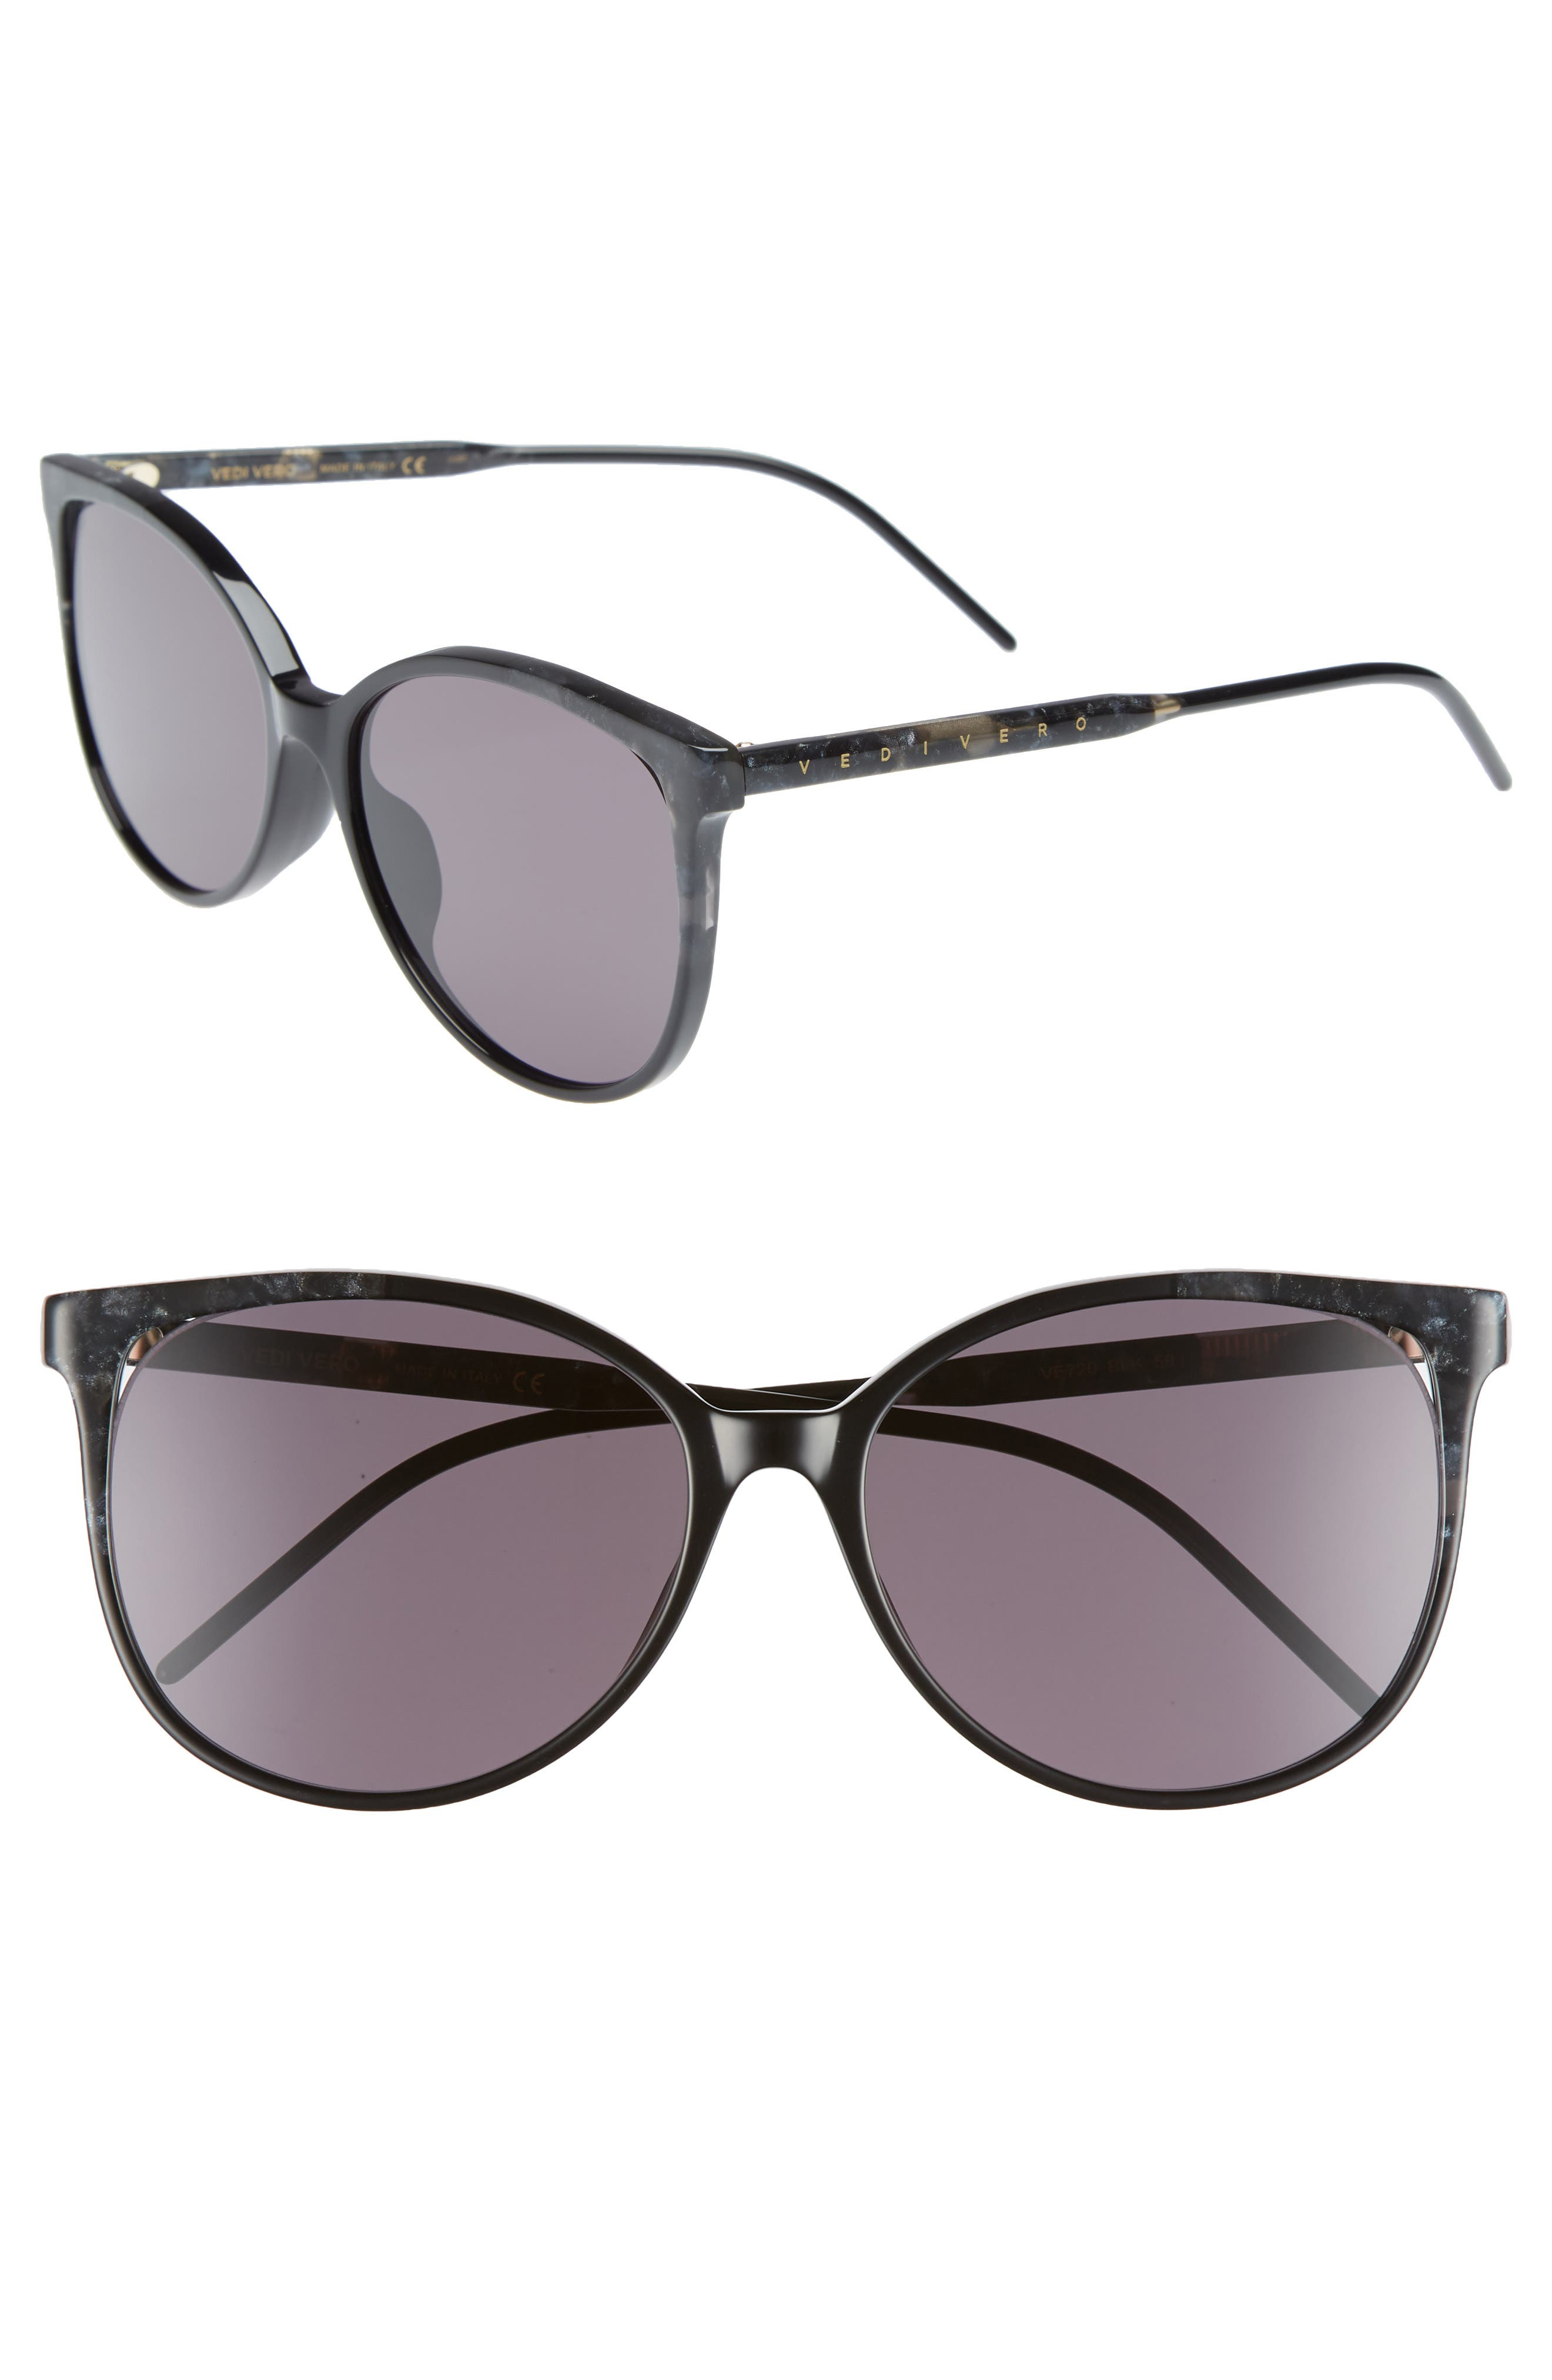 59mm Round Sunglasses,                             Main thumbnail 1, color,                             Black/Brown